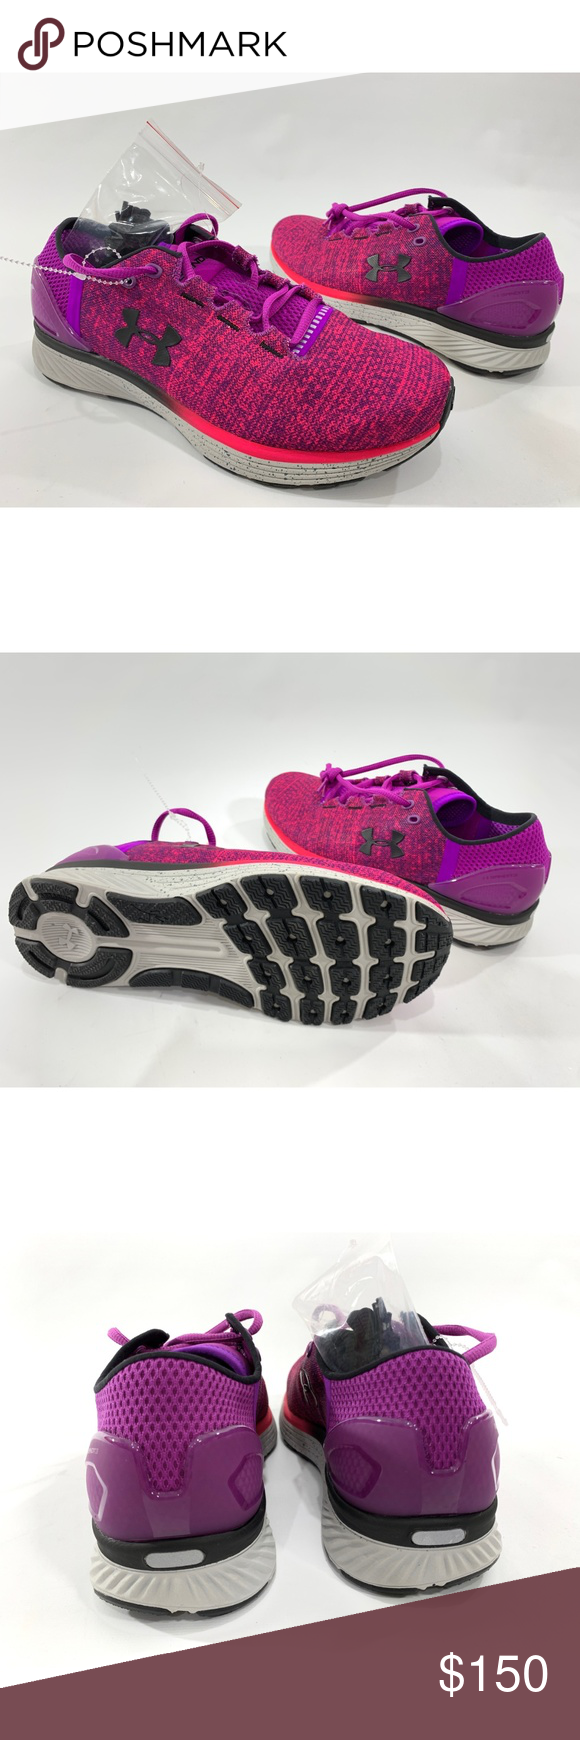 best service 7167e 6862e Under Armour Charged Bandit 3 Womens Running Shoes UNDER ...